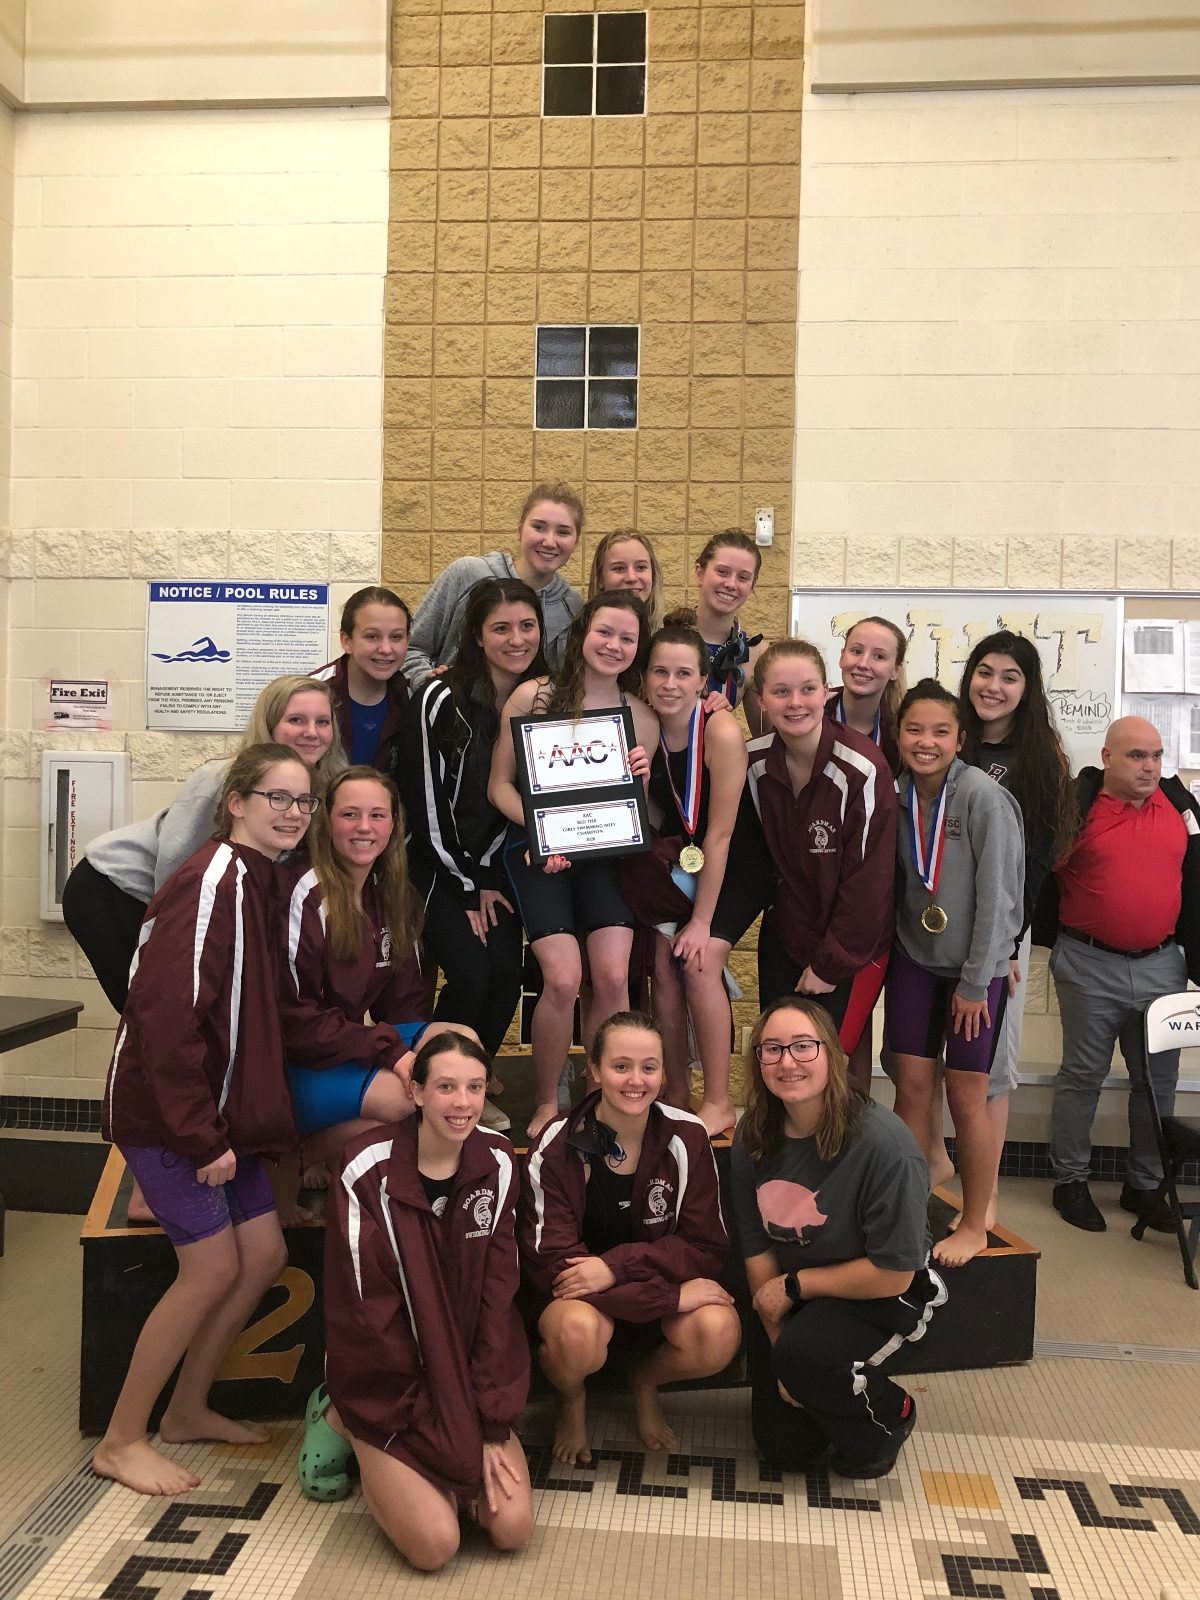 Girls Team Wins AAC Conference Title for the 6th Straight Year